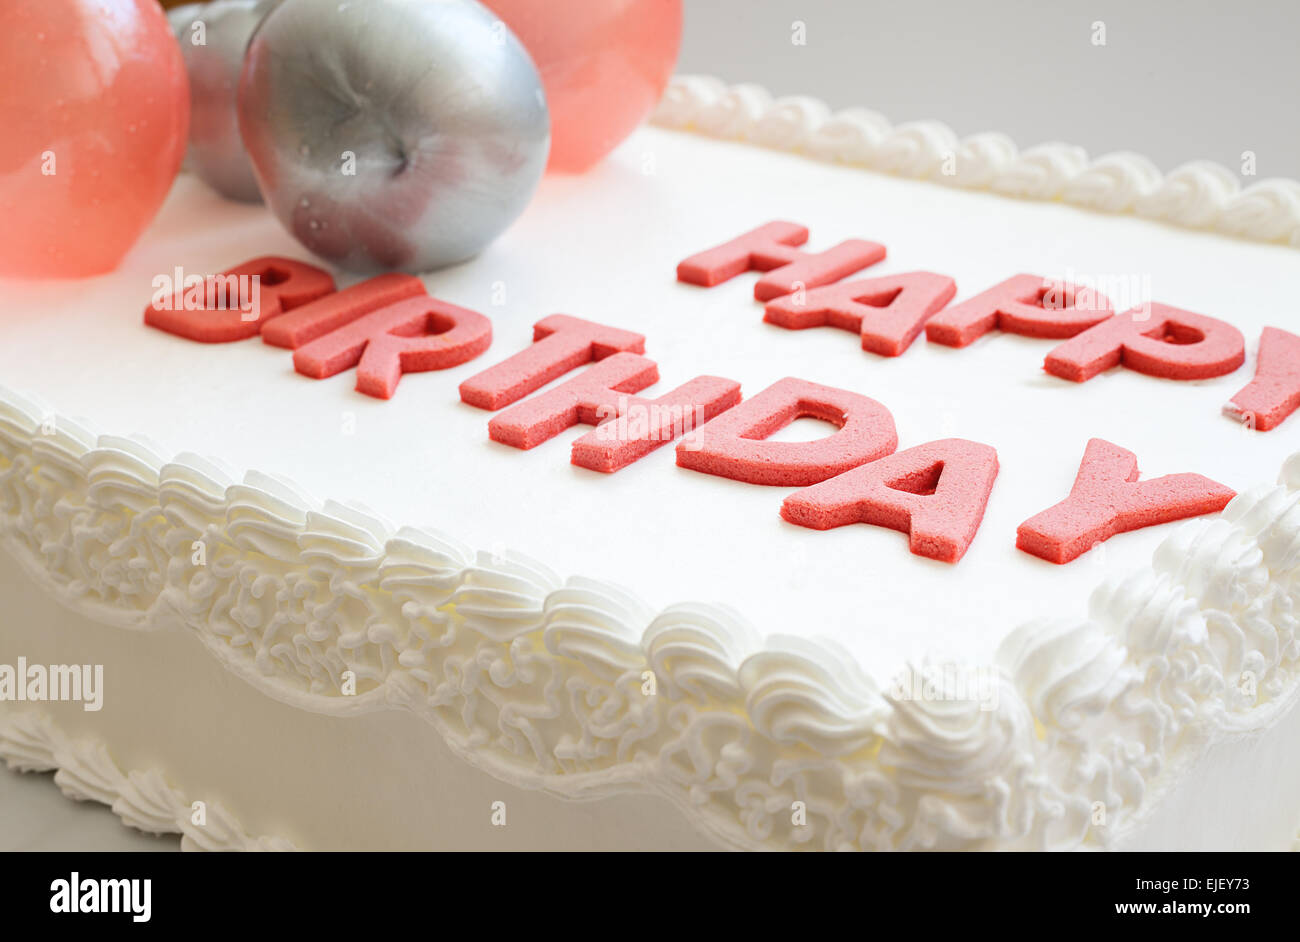 Details Of A Happy Birthday Cake On White Background Stock Photo